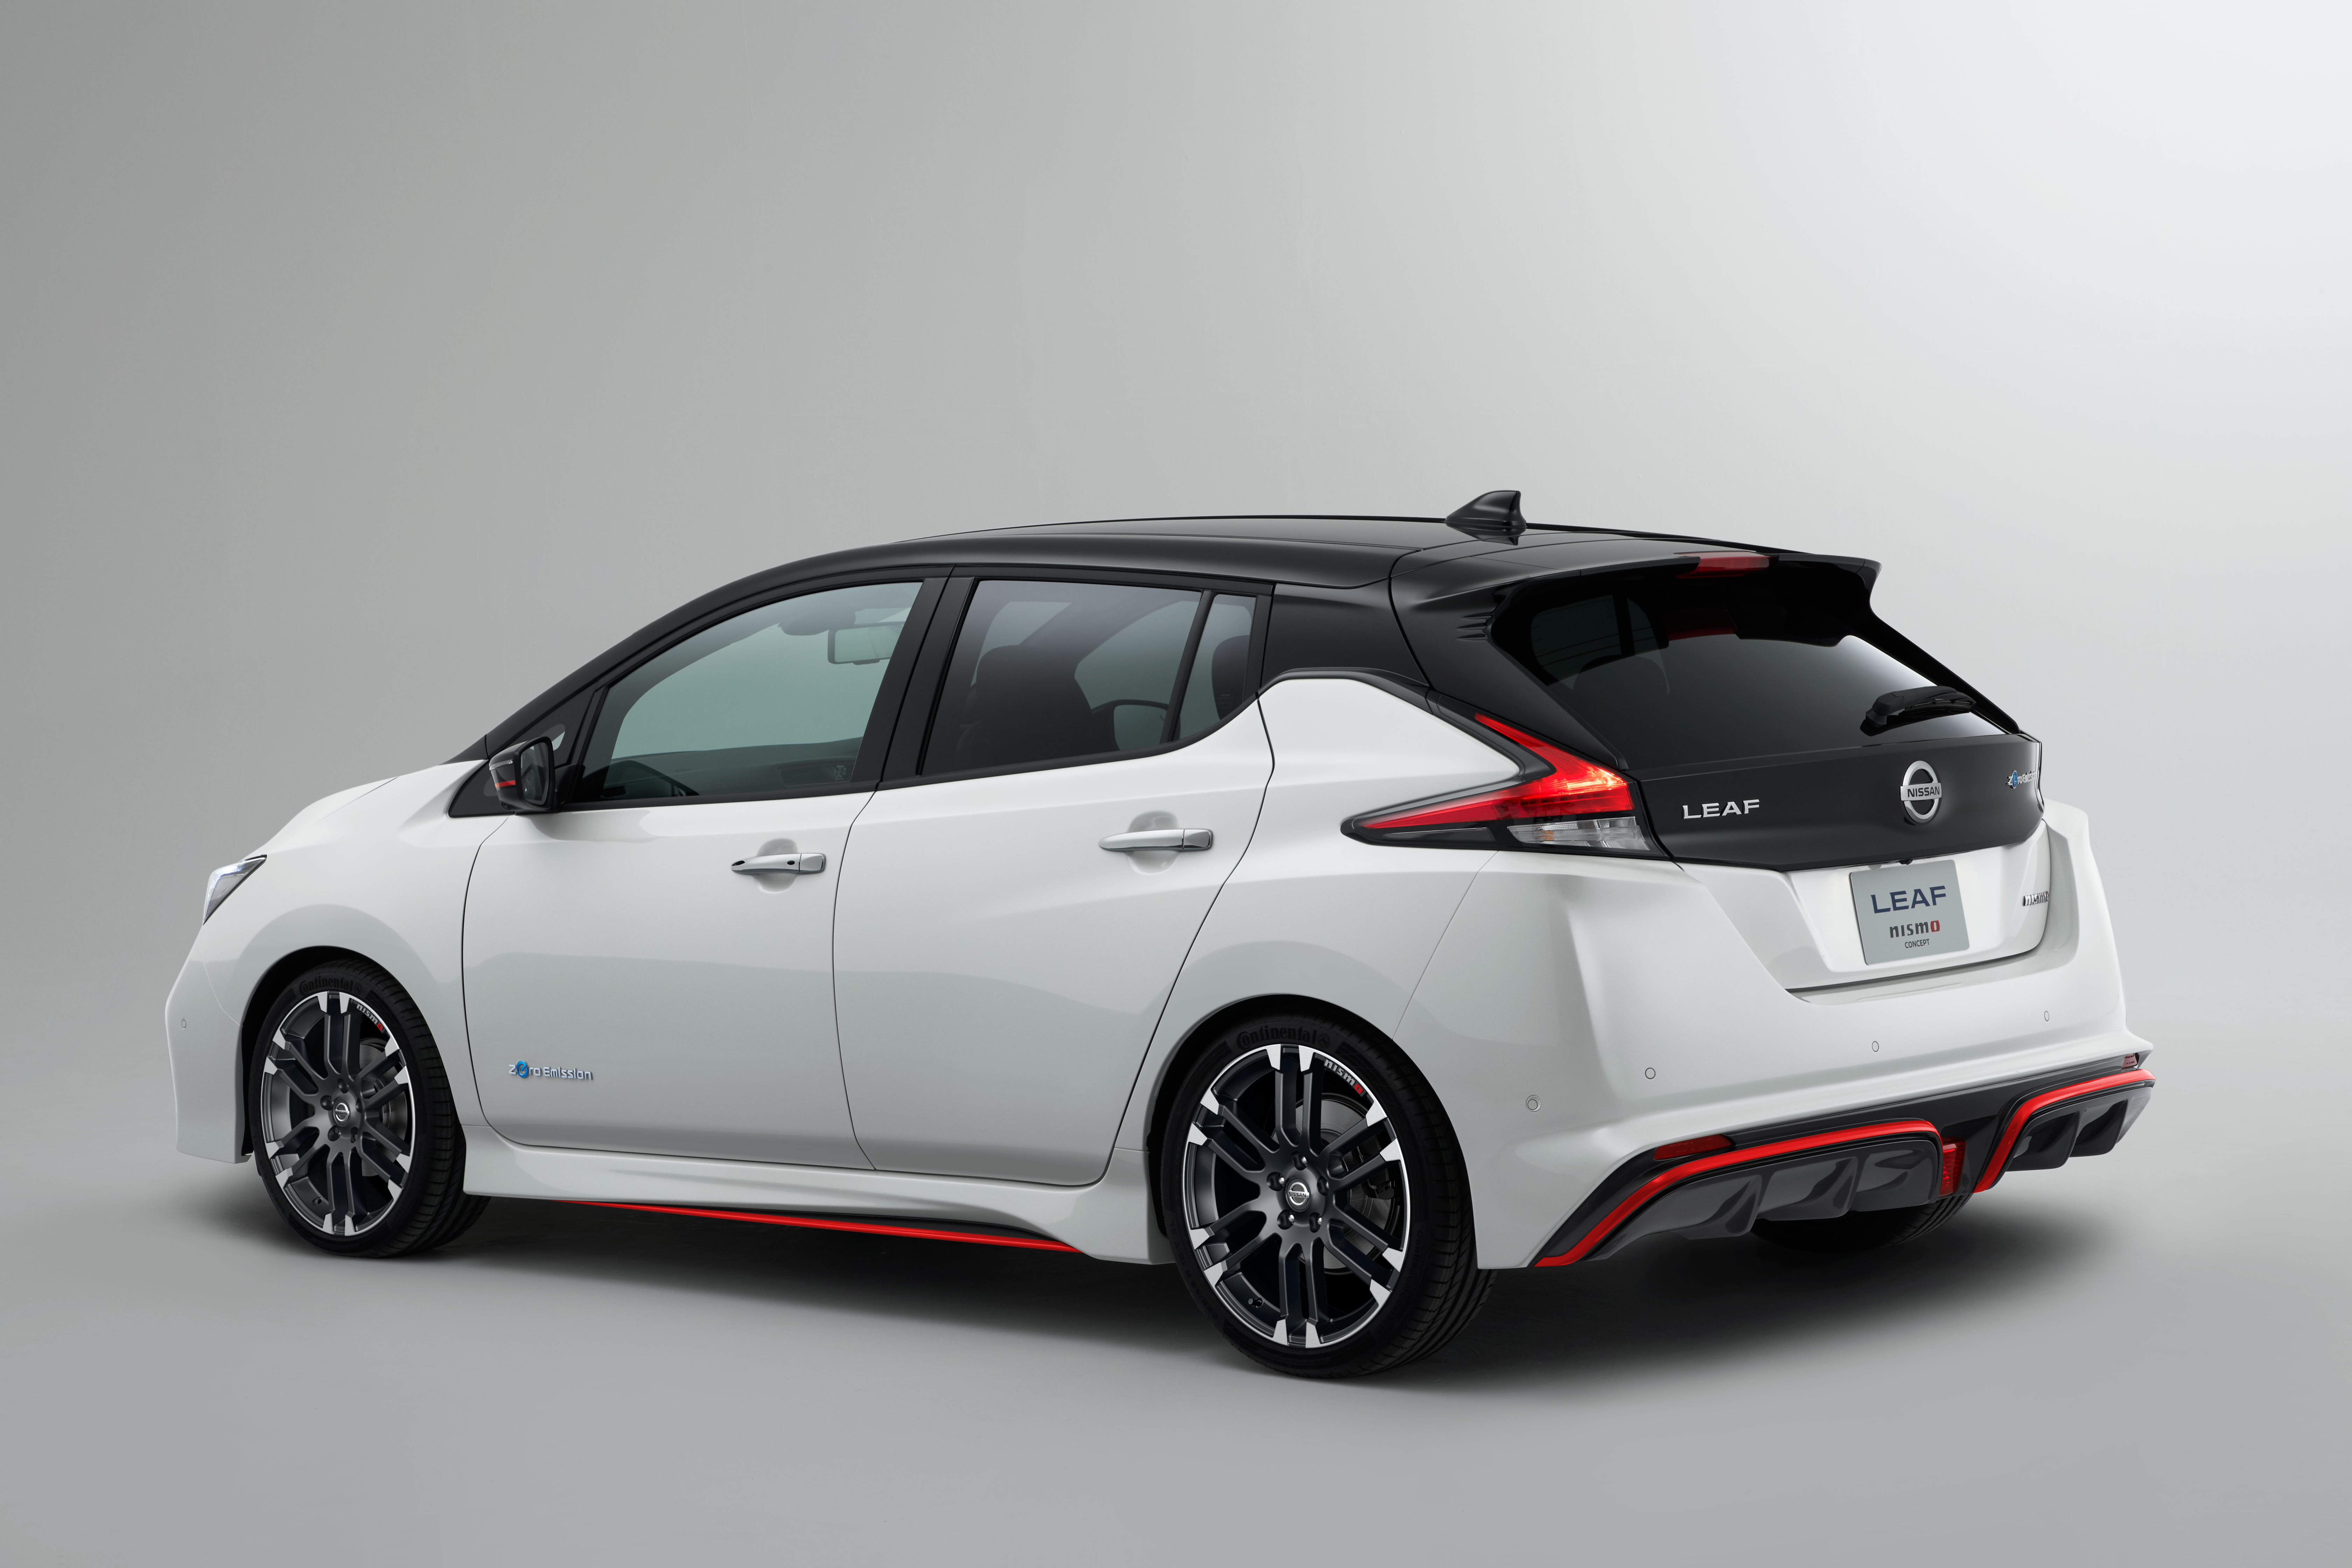 The Custom Tuning Computer In Nissan Leaf Nismo Allows For A Delicate But Strong Acceleration Response This Results Comfortable Driving On Both City